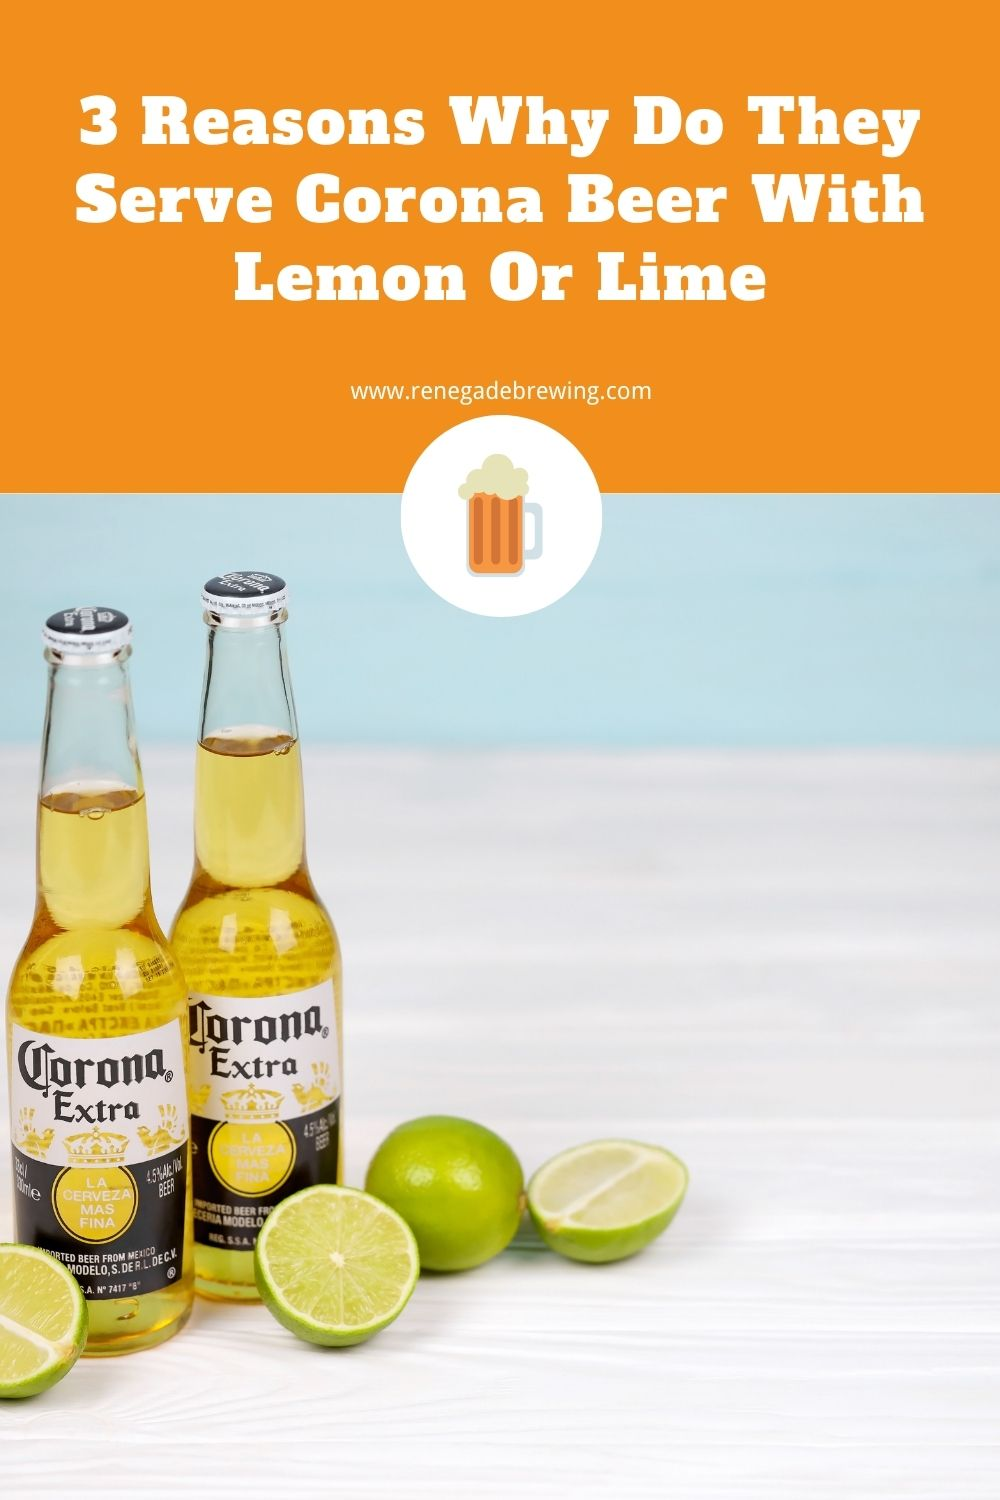 3 Reasons Why Do They Serve Corona Beer with Lemon or Lime 1